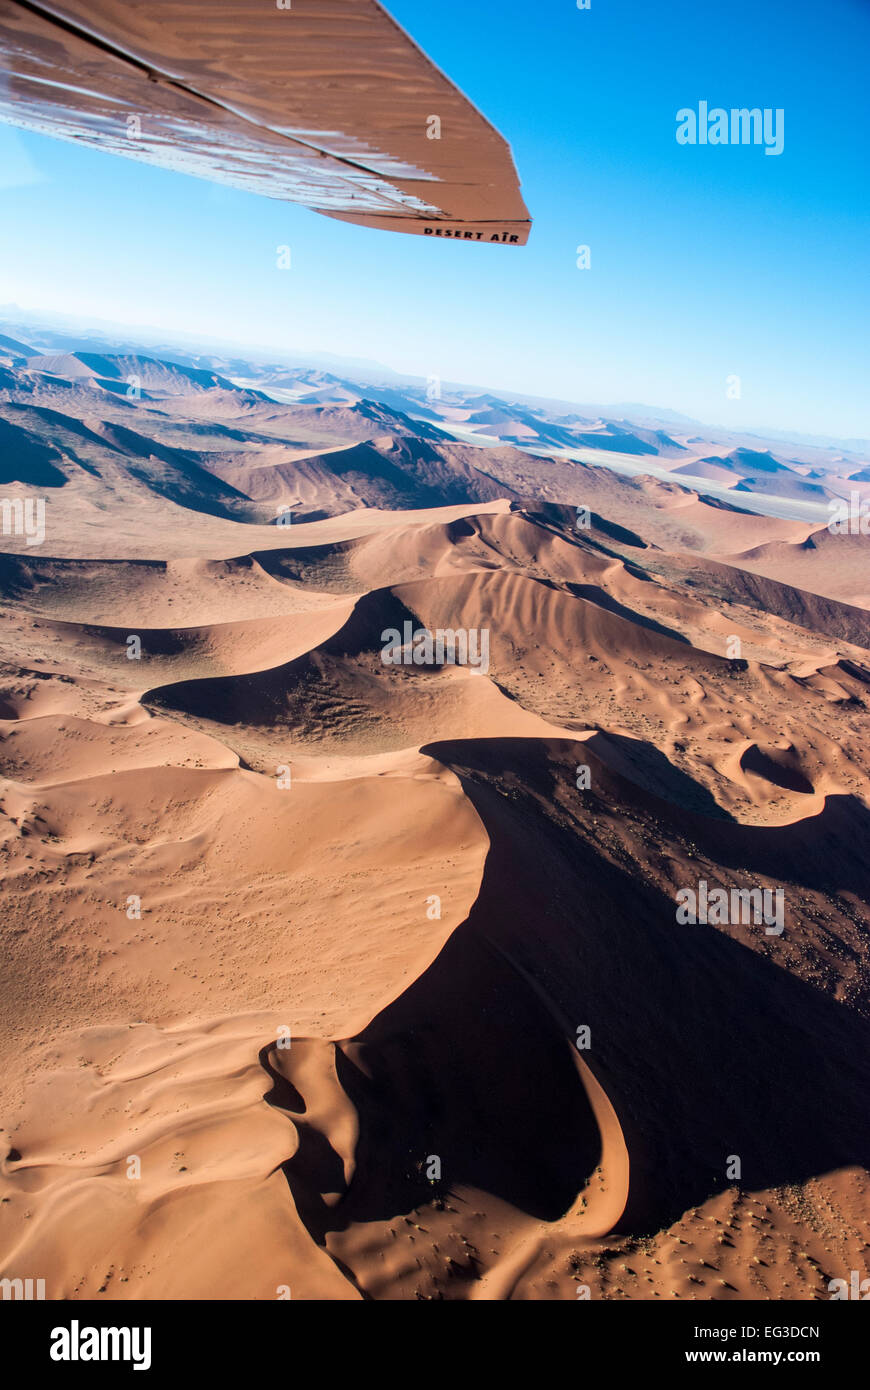 Aerial View, including the wing of small plane, over Sand Dunes in Sossusvlei, Nabib-Naukluft National Park, Namibia, - Stock Image